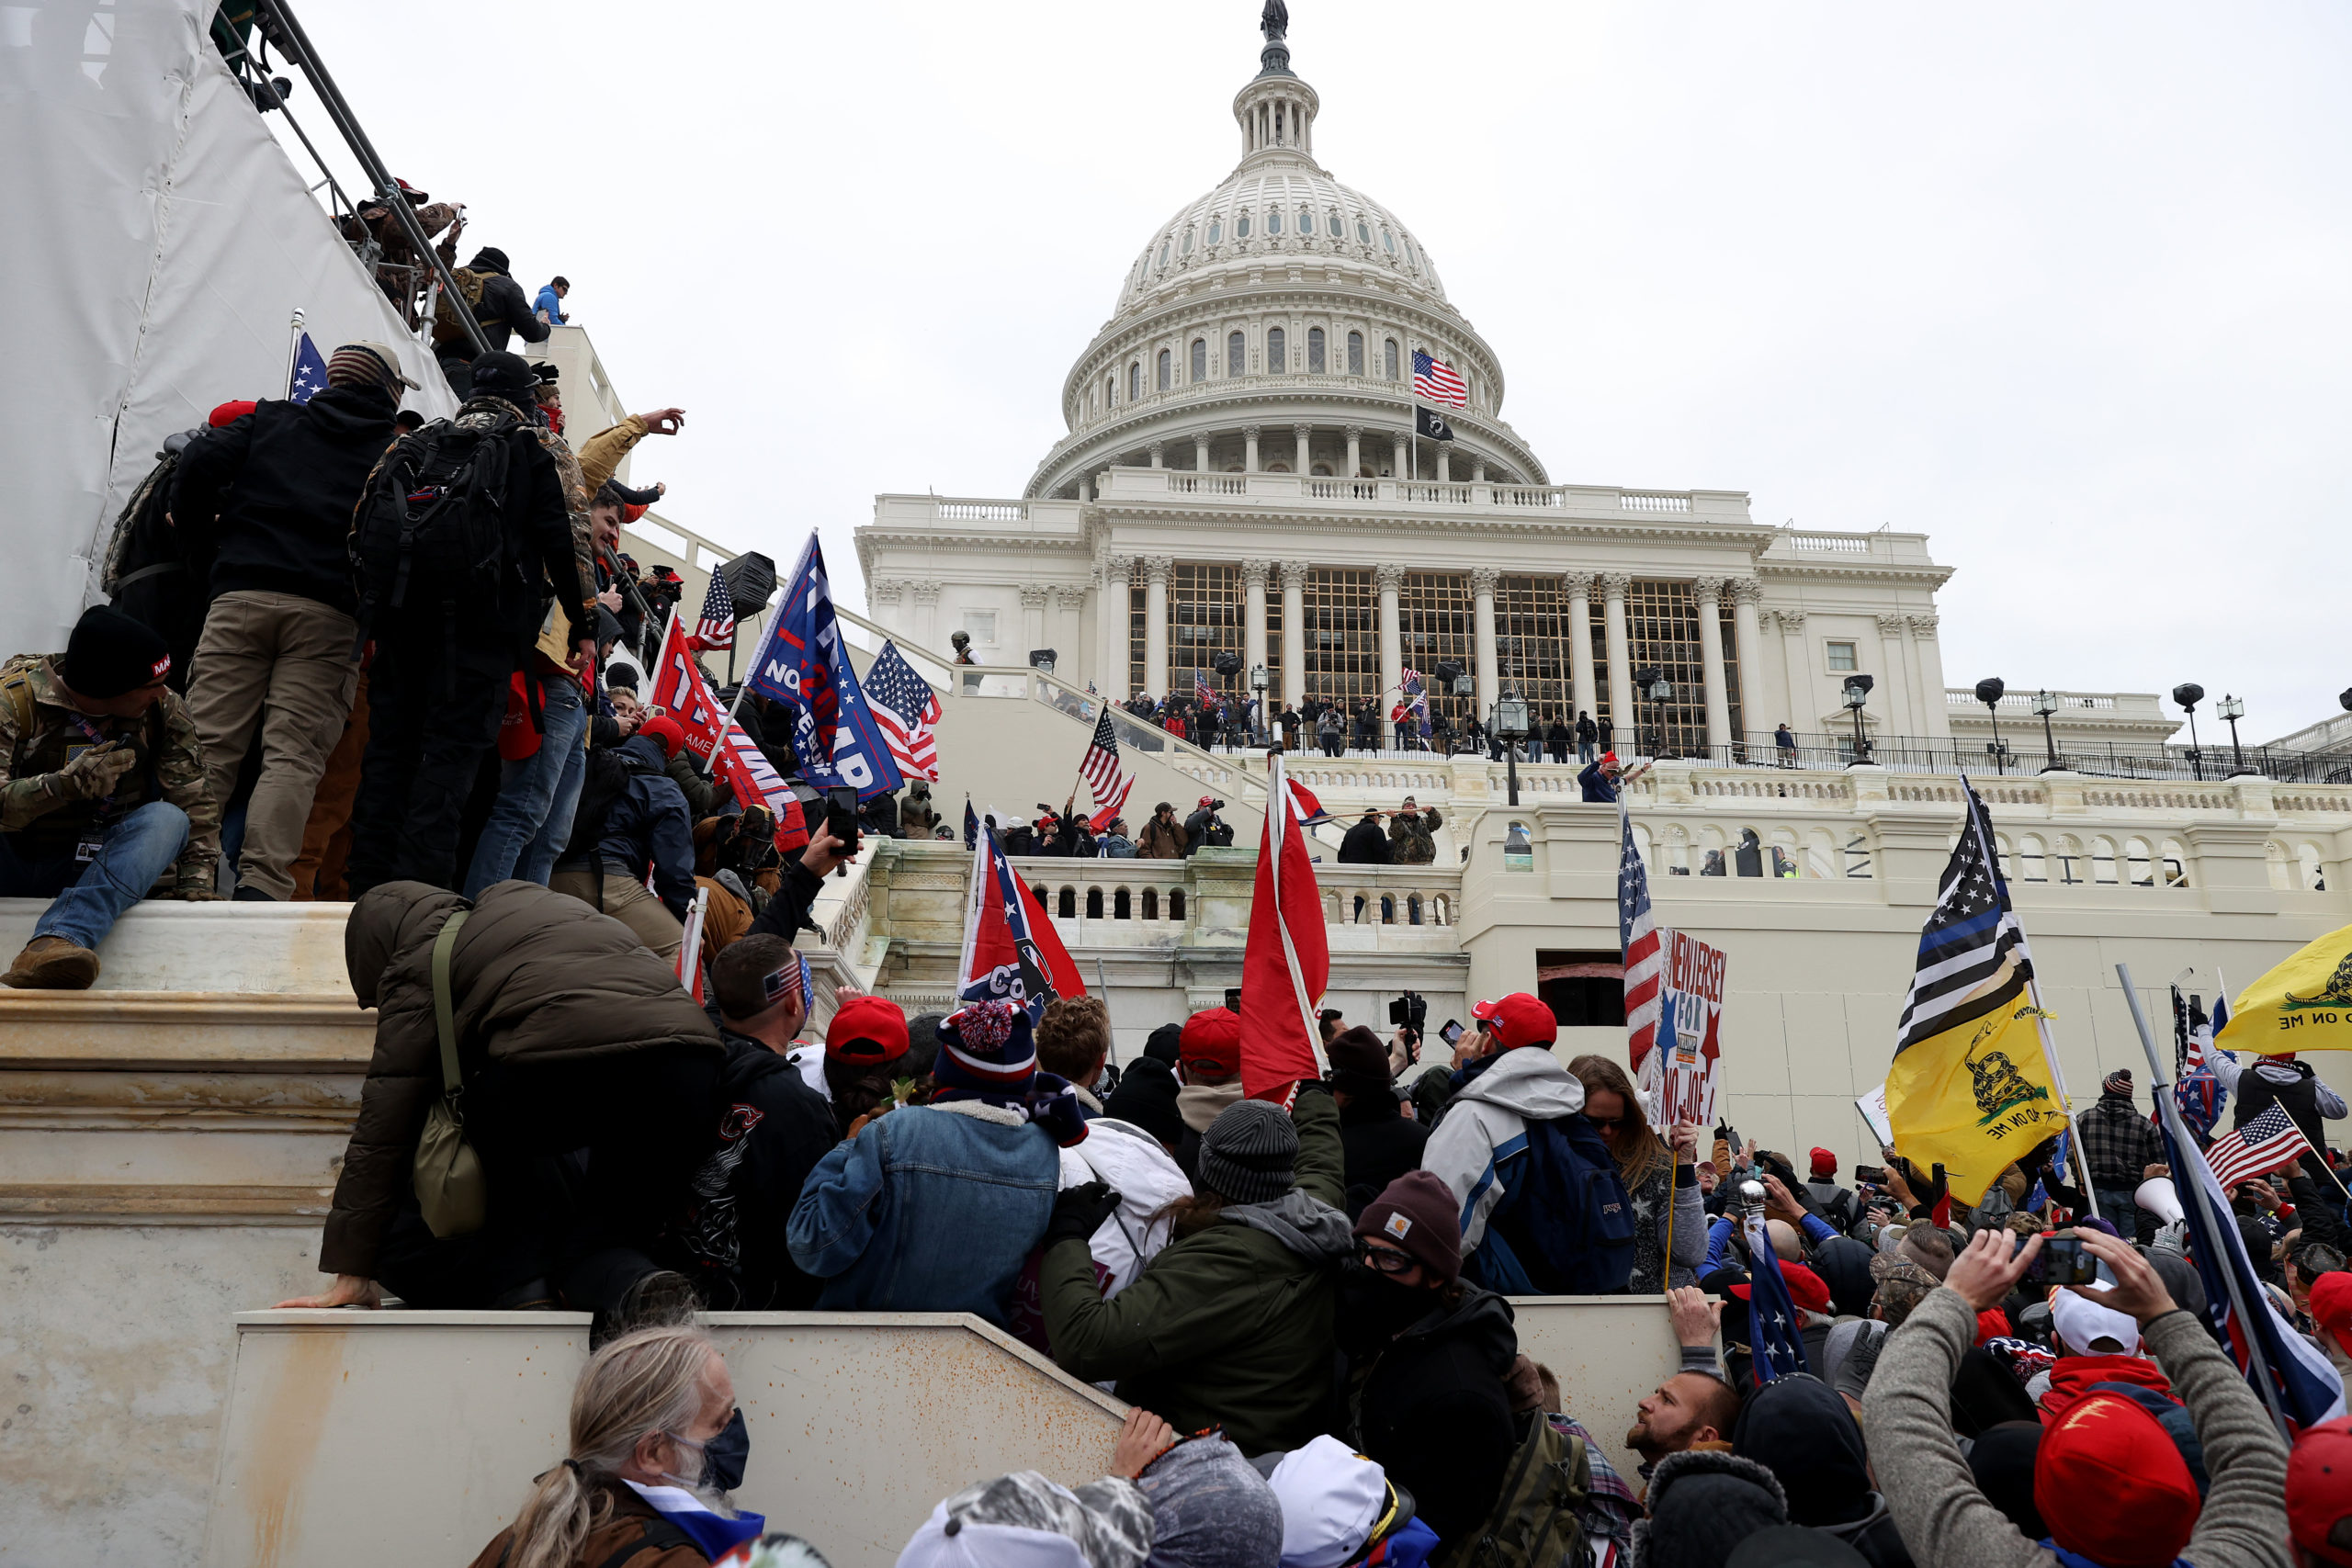 Rioters gather outside the U.S. Capitol on January 6. Many sought to stop Congress from certifying President Joe Biden's electoral victory. (Tasos Katopodis/Getty Images)